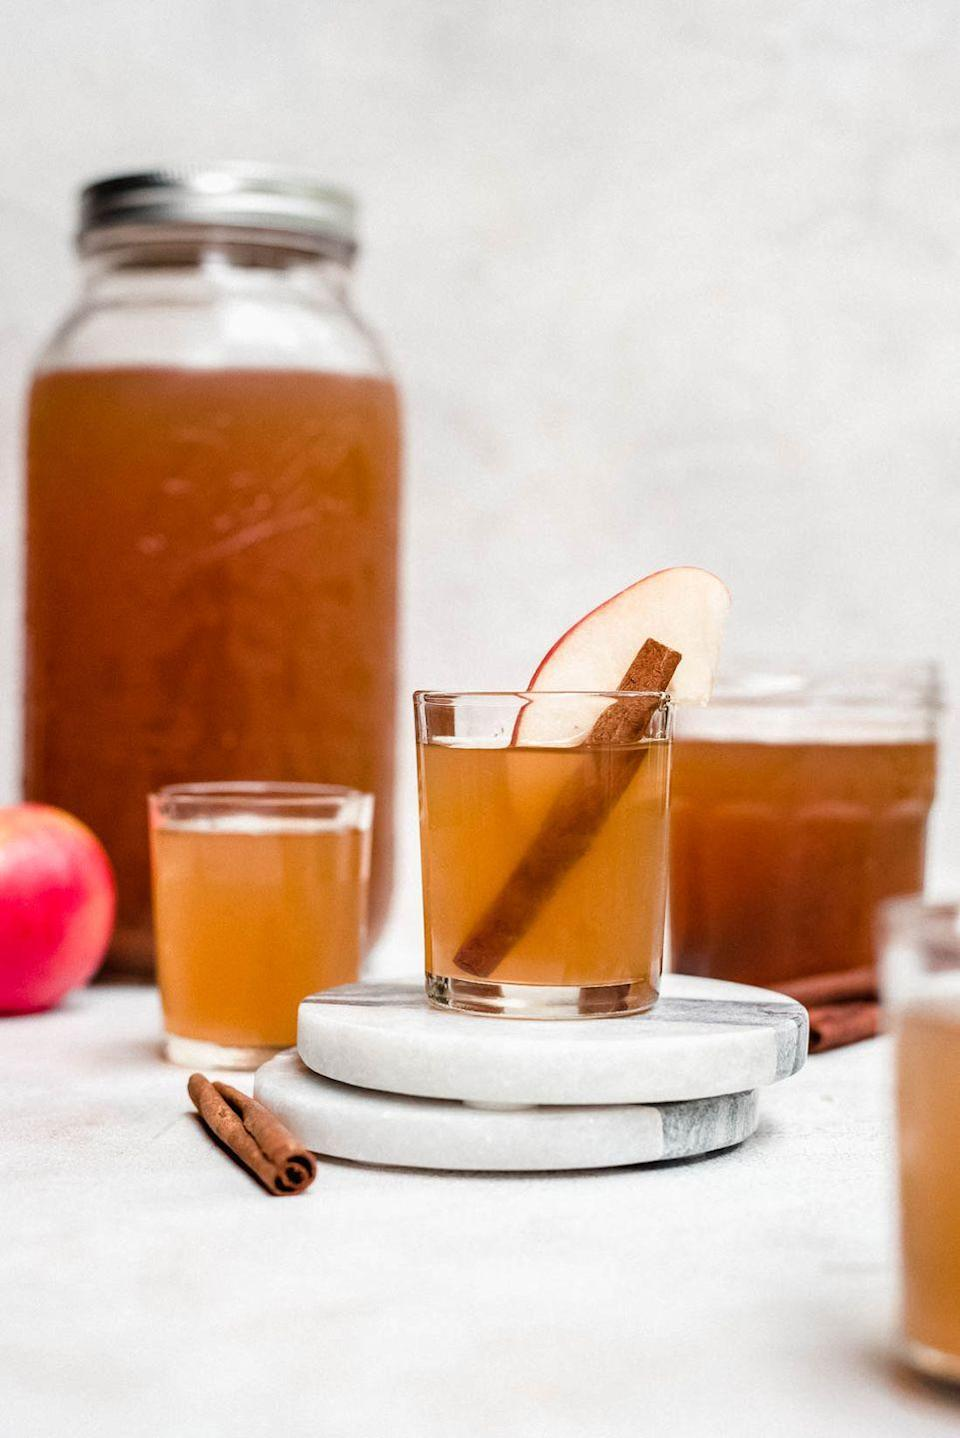 """<p>Wow your friends this fall by making your own moonshine. This apple pie recipe tastes just like the real thing!</p><p><strong>Get the recipe at <a href=""""https://cookienameddesire.com/apple-pie-moonshine/"""" rel=""""nofollow noopener"""" target=""""_blank"""" data-ylk=""""slk:A Cookie Named Desire"""" class=""""link rapid-noclick-resp"""">A Cookie Named Desire</a>.</strong></p><p><strong><a class=""""link rapid-noclick-resp"""" href=""""https://go.redirectingat.com?id=74968X1596630&url=https%3A%2F%2Fwww.walmart.com%2Fsearch%2F%3Fquery%3Dmason%2Bjars&sref=https%3A%2F%2Fwww.thepioneerwoman.com%2Ffood-cooking%2Fmeals-menus%2Fg33510531%2Ffall-cocktail-recipes%2F"""" rel=""""nofollow noopener"""" target=""""_blank"""" data-ylk=""""slk:SHOP MASON JARS"""">SHOP MASON JARS</a><br></strong></p>"""